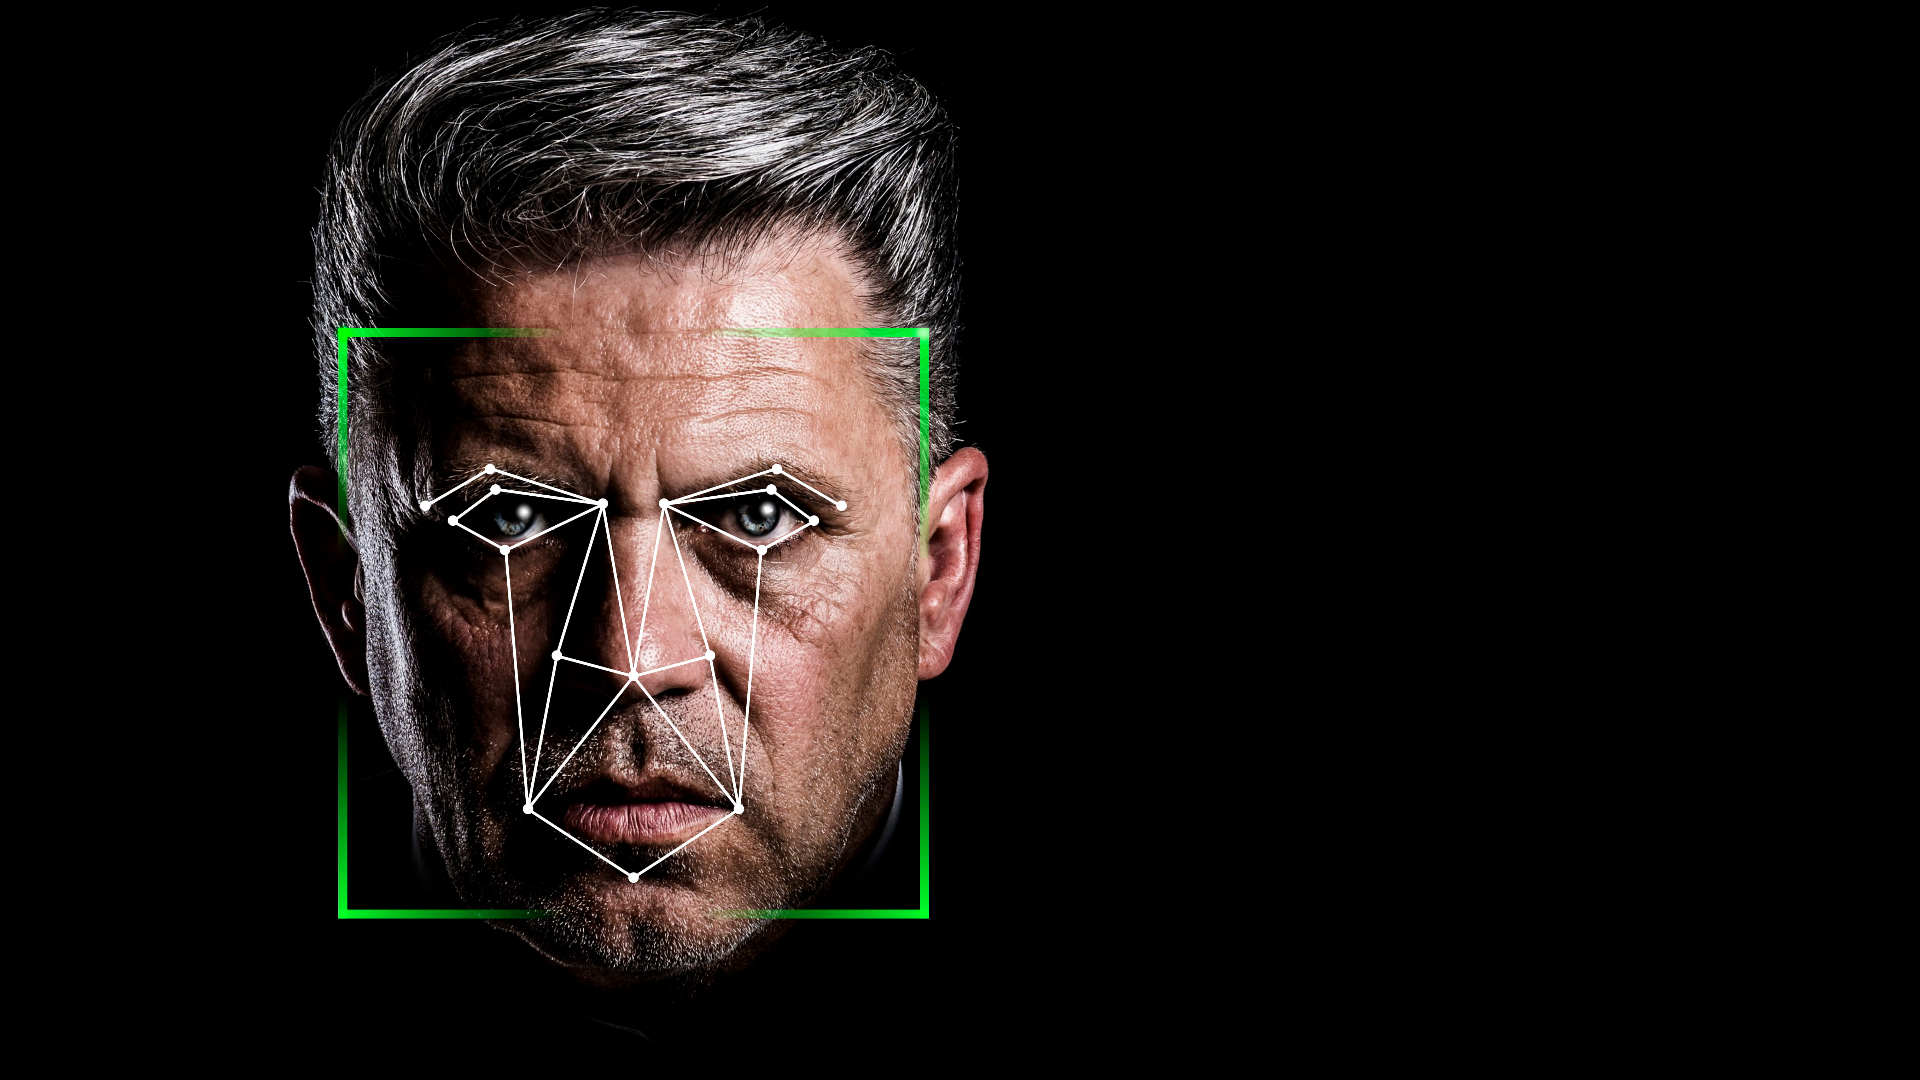 use of face recognition software